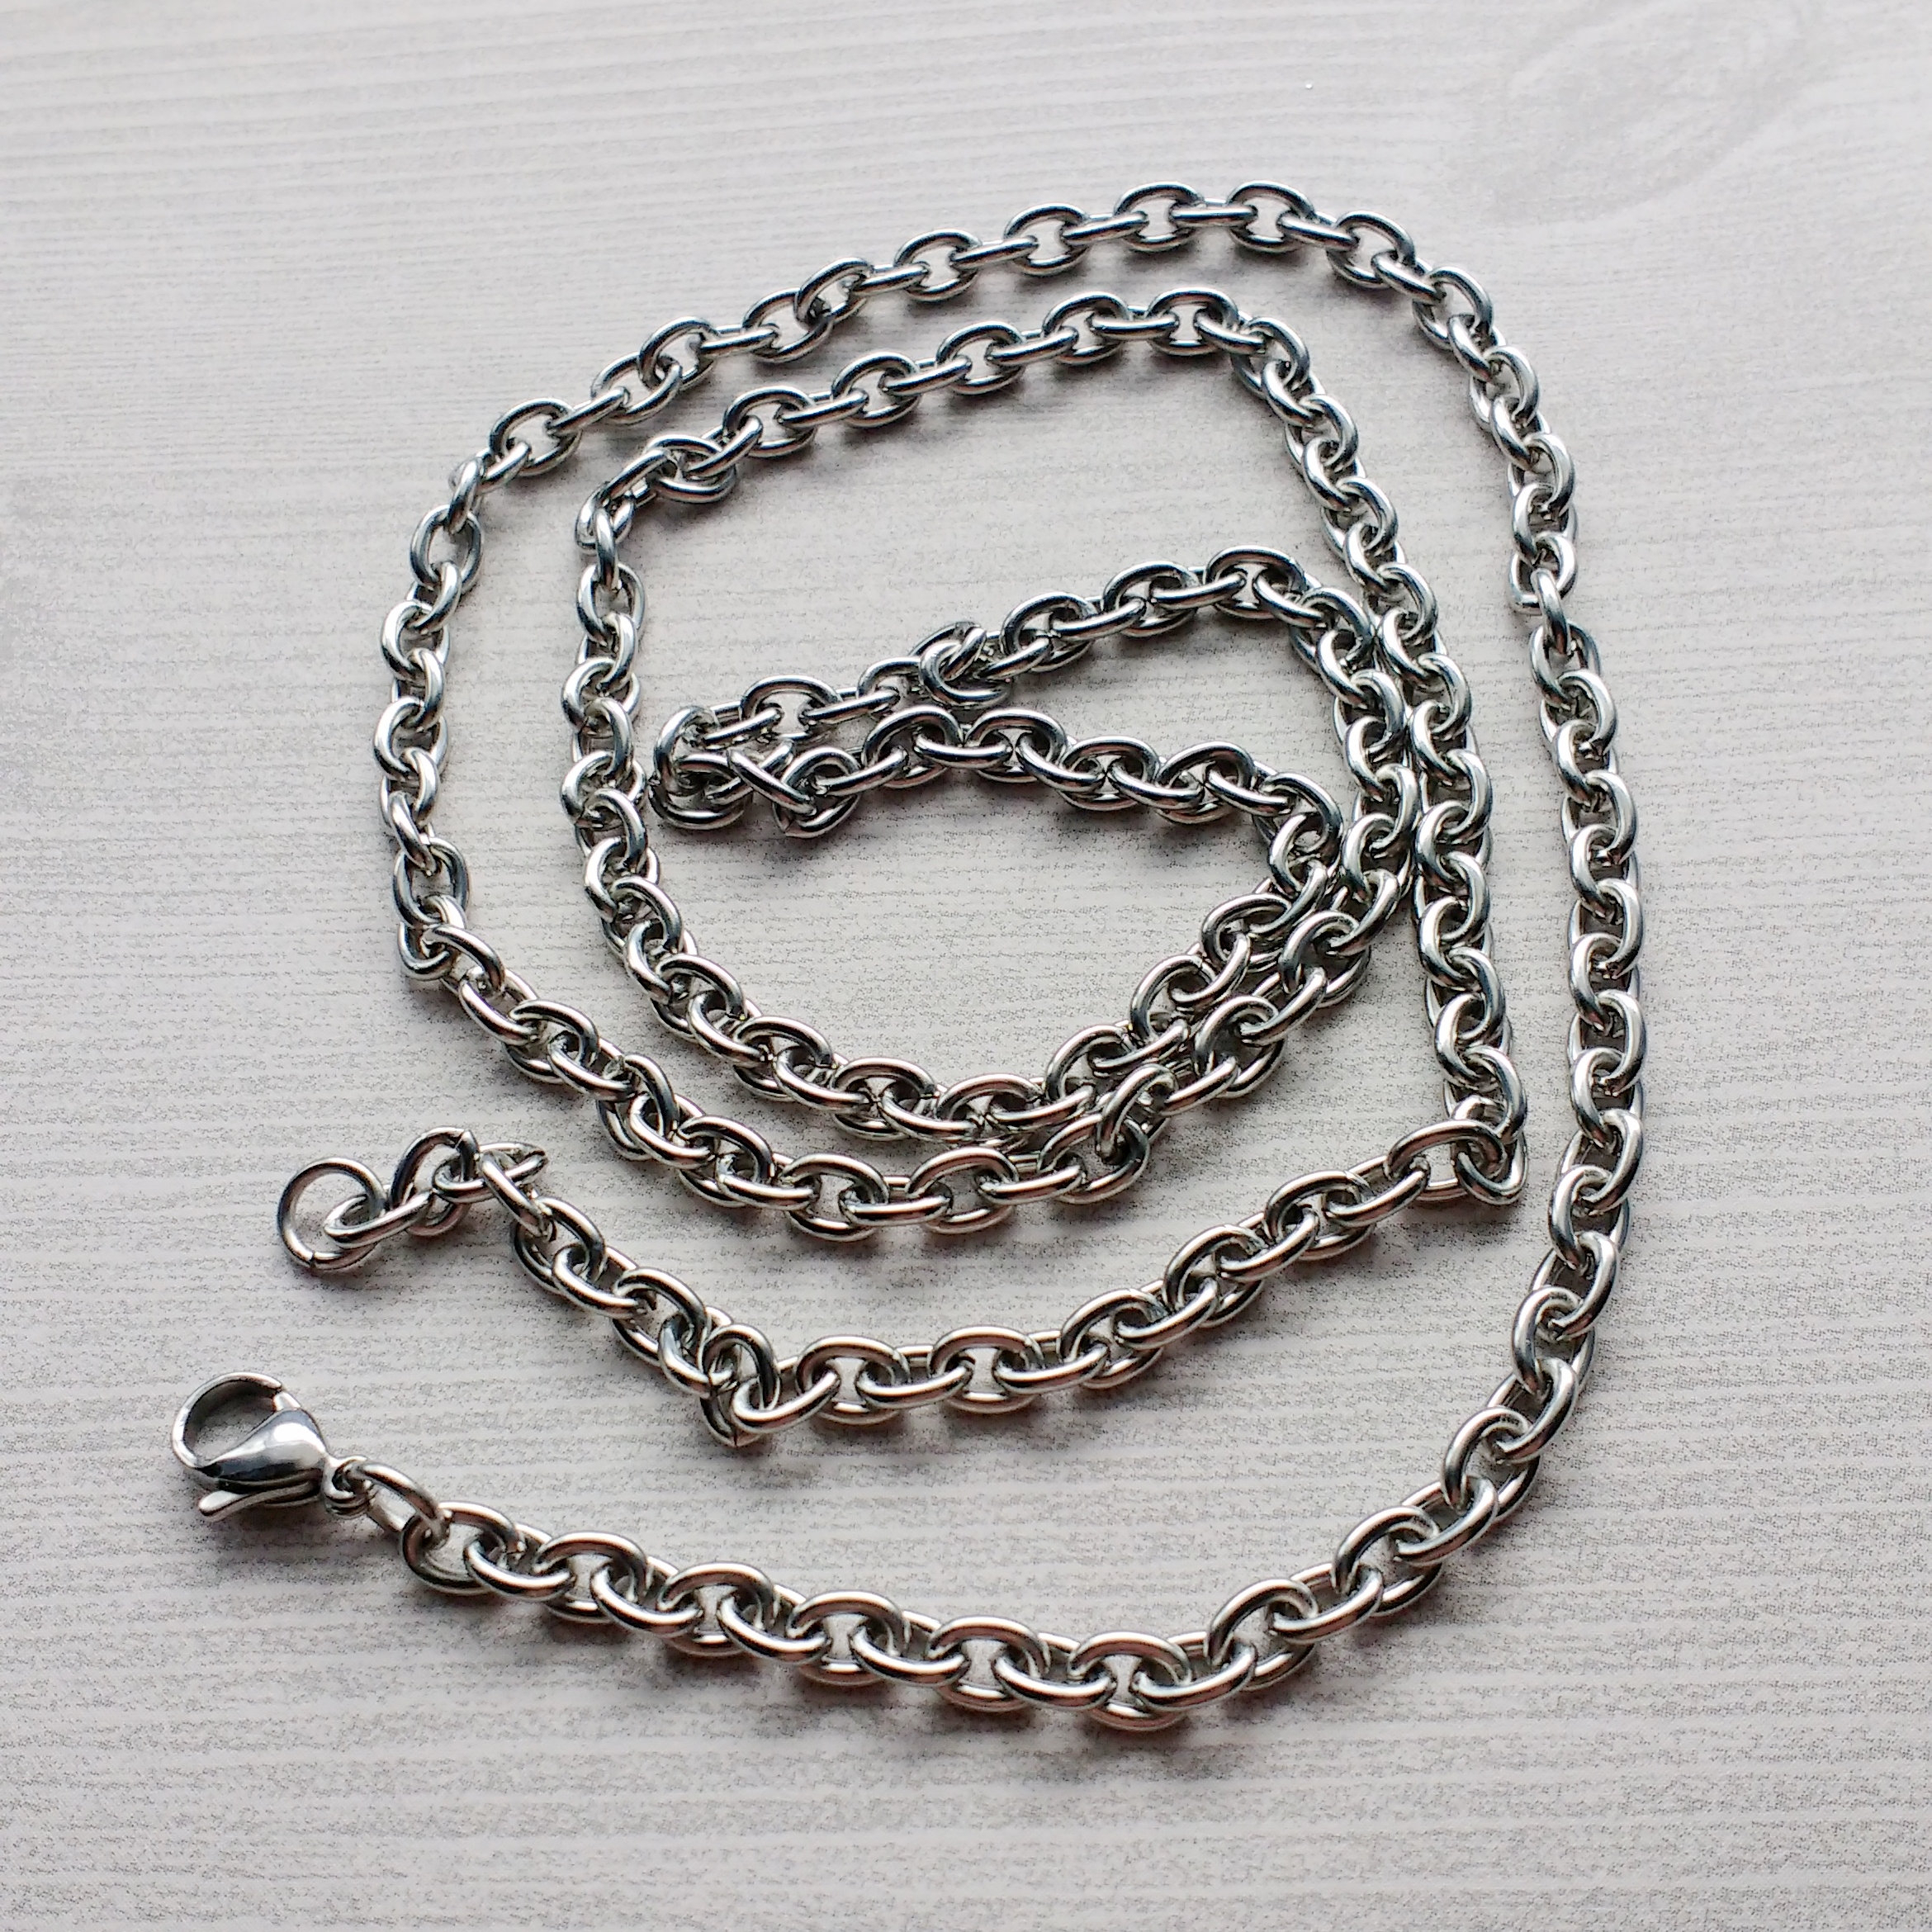 5 Cable Chain Necklaces (View 19 of 25)